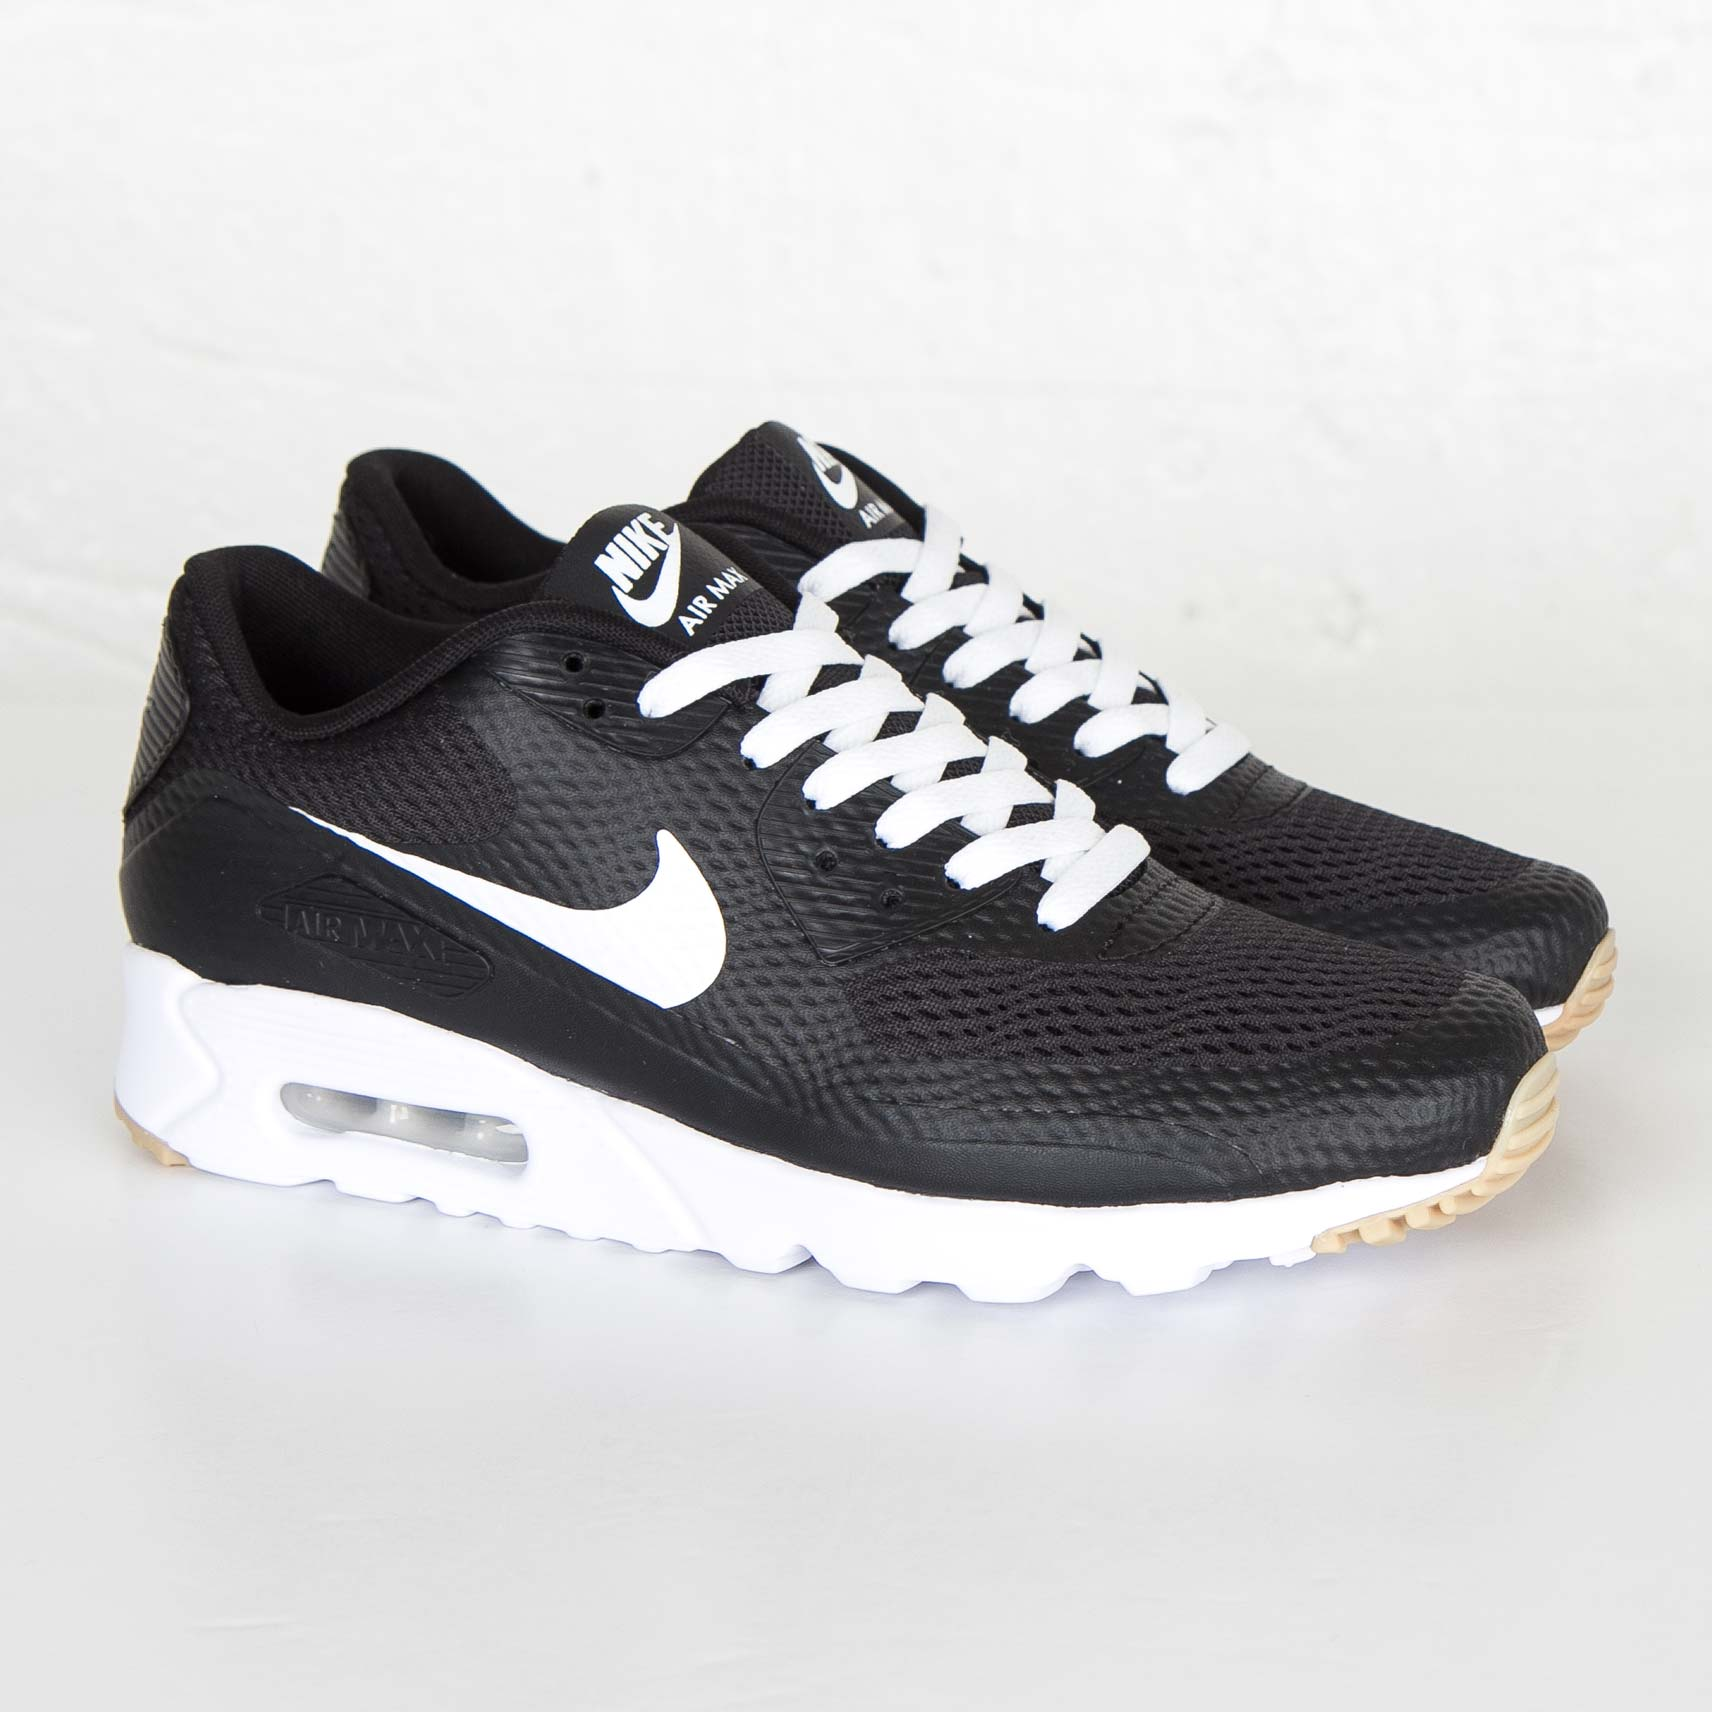 promo code 04f49 d8bd5 Nike Air Max 90 Ultra Essential